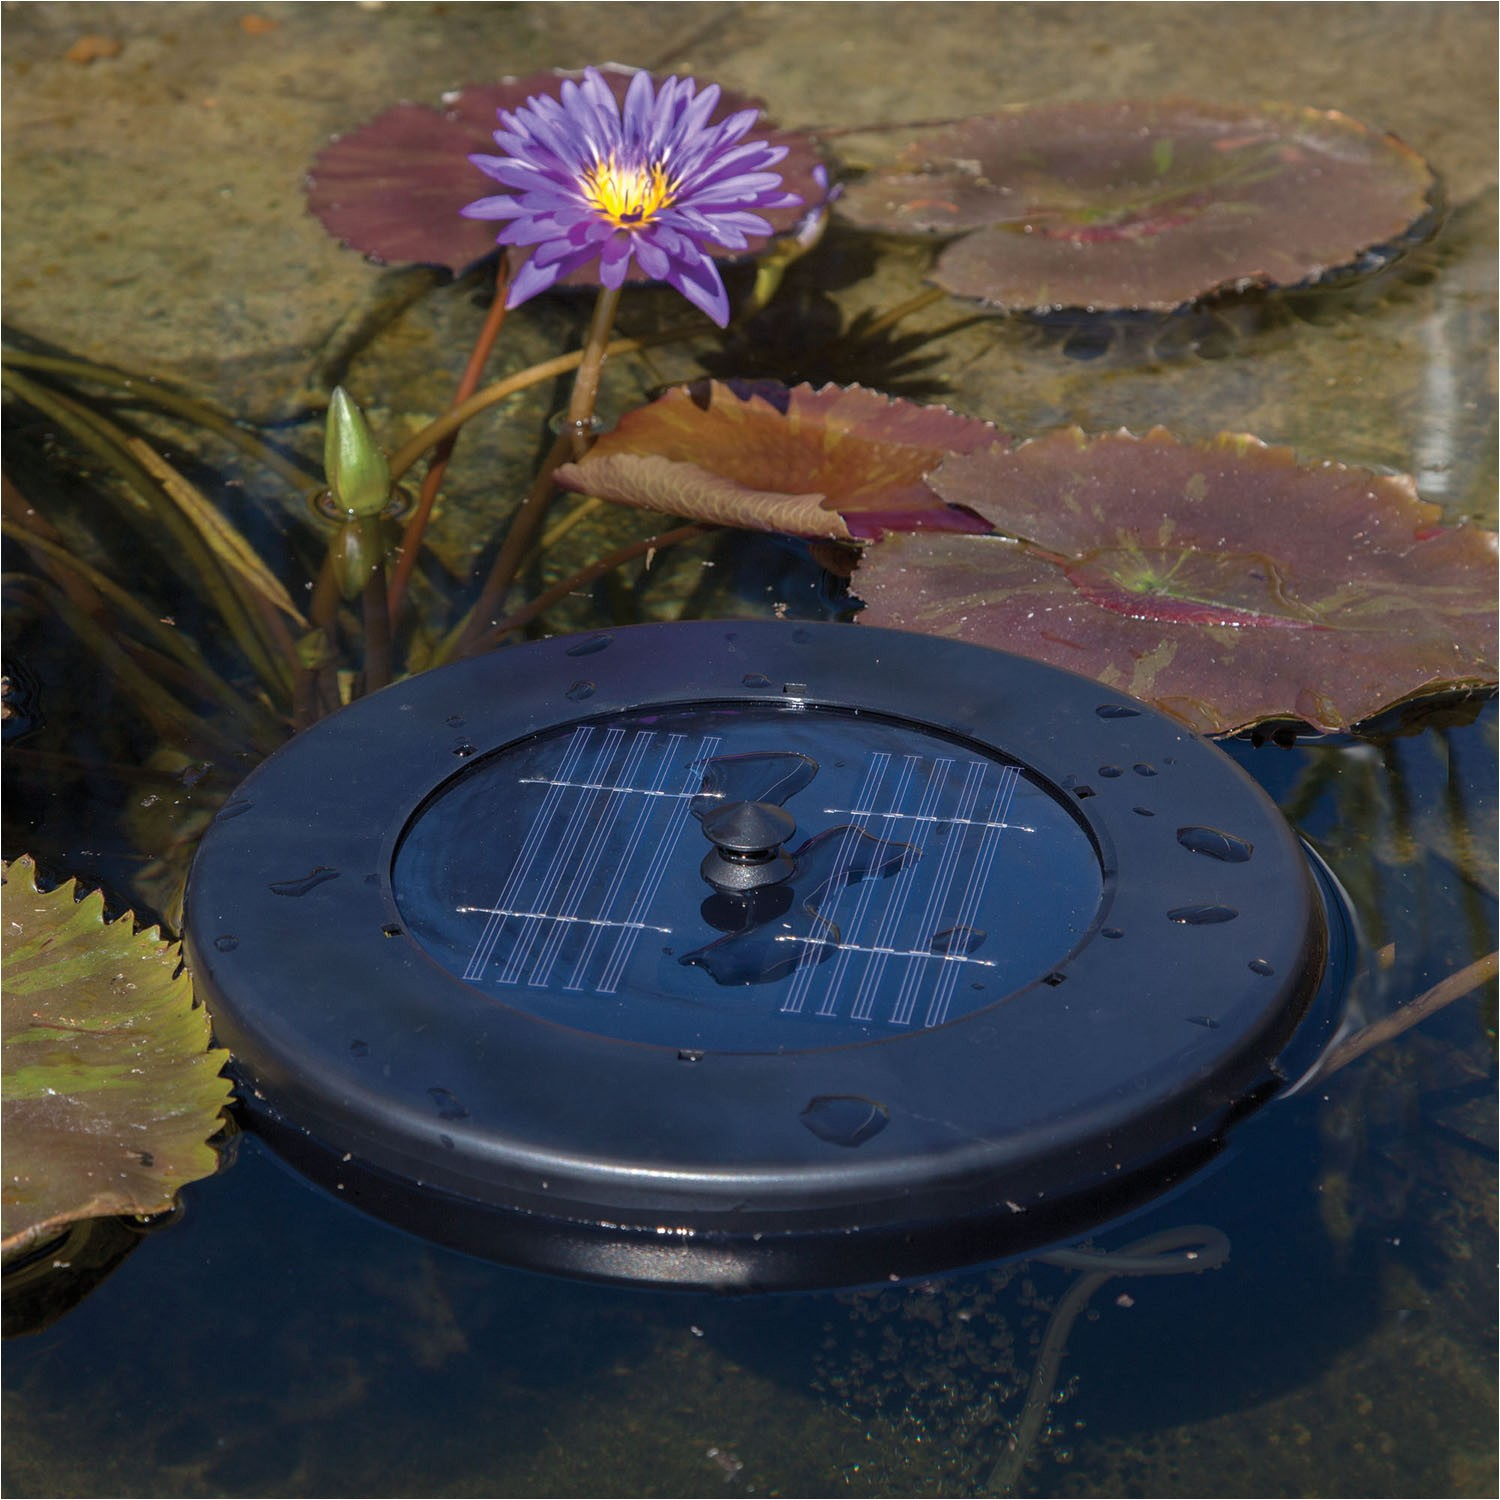 Pond Boss solar Floating Pond Aerator Pond Boss solar Floating Pond Aerator